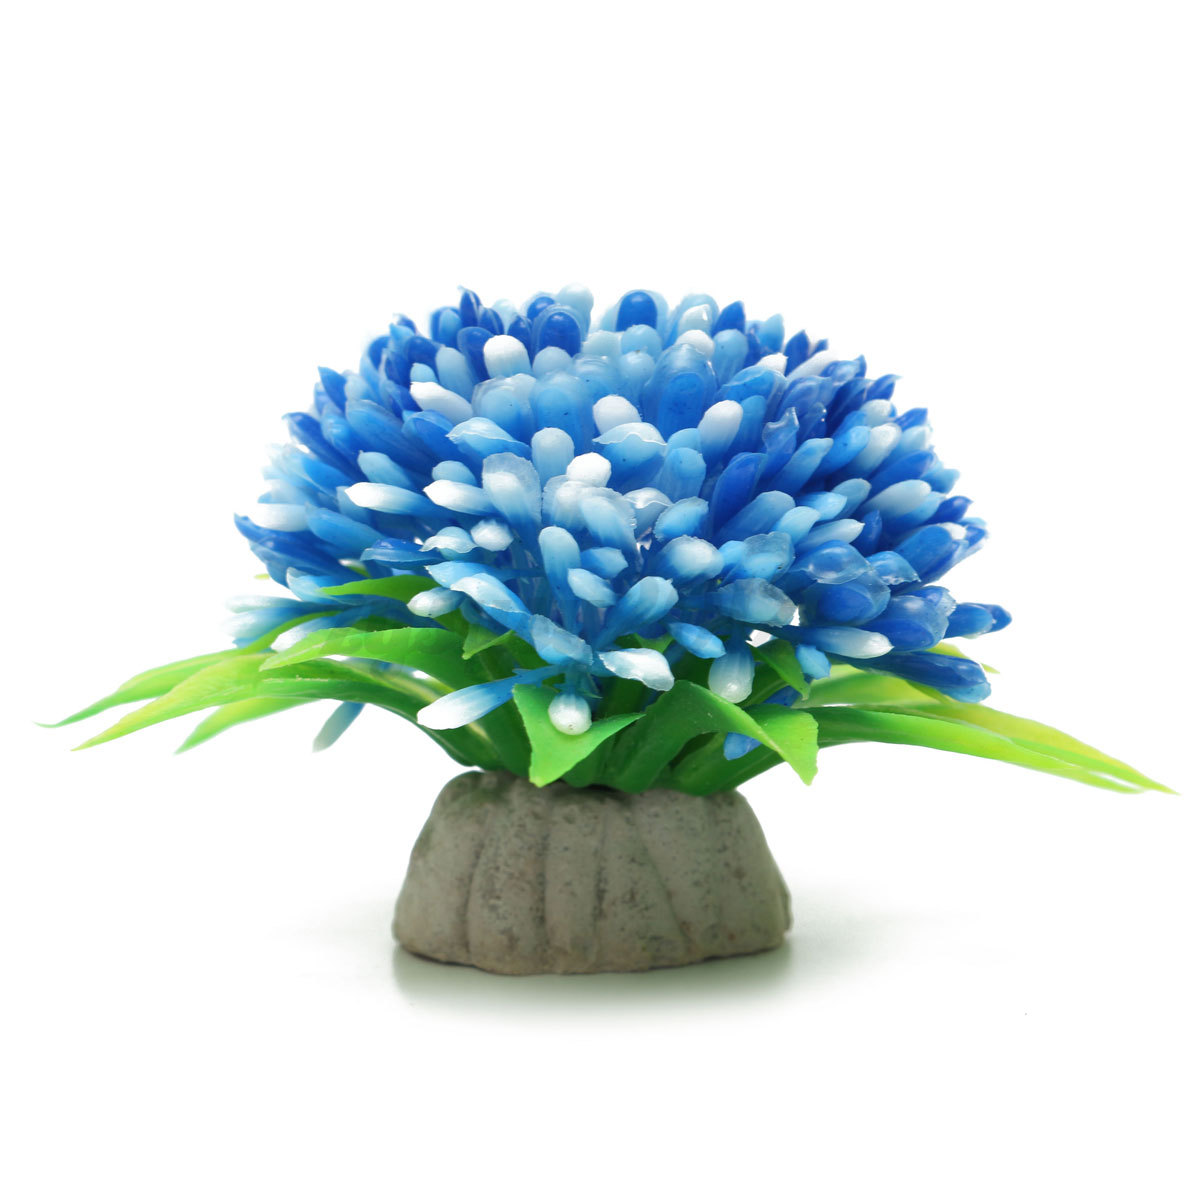 Plastic fish tank aquarium flowers grass decoration for Aquatic decoration